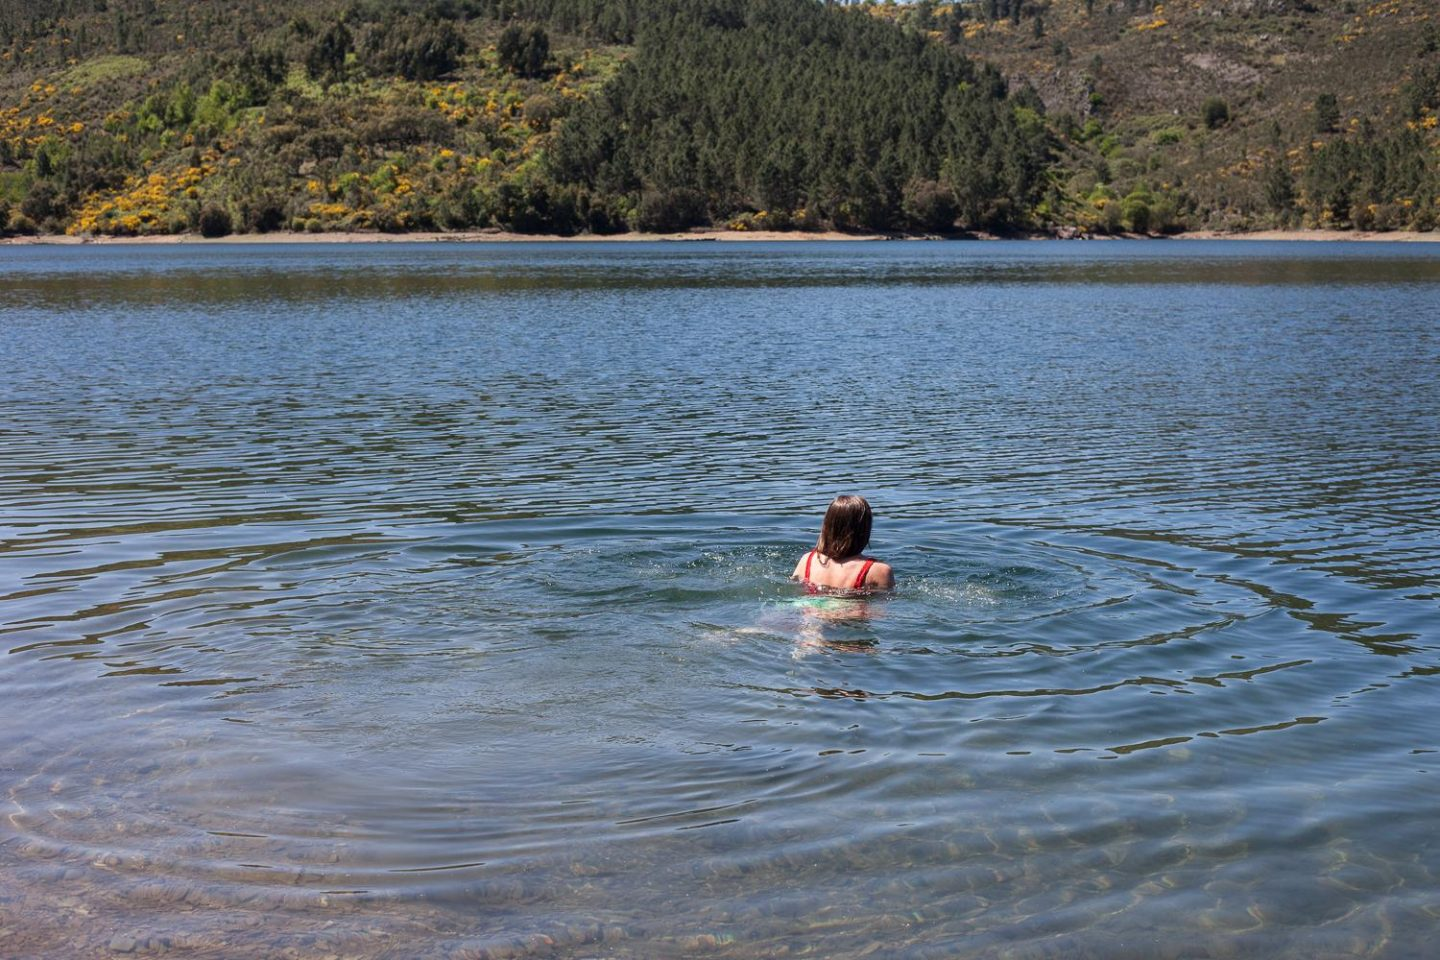 The joy of local adventures / Go local - how adventures close to home can make us happy wild swimming